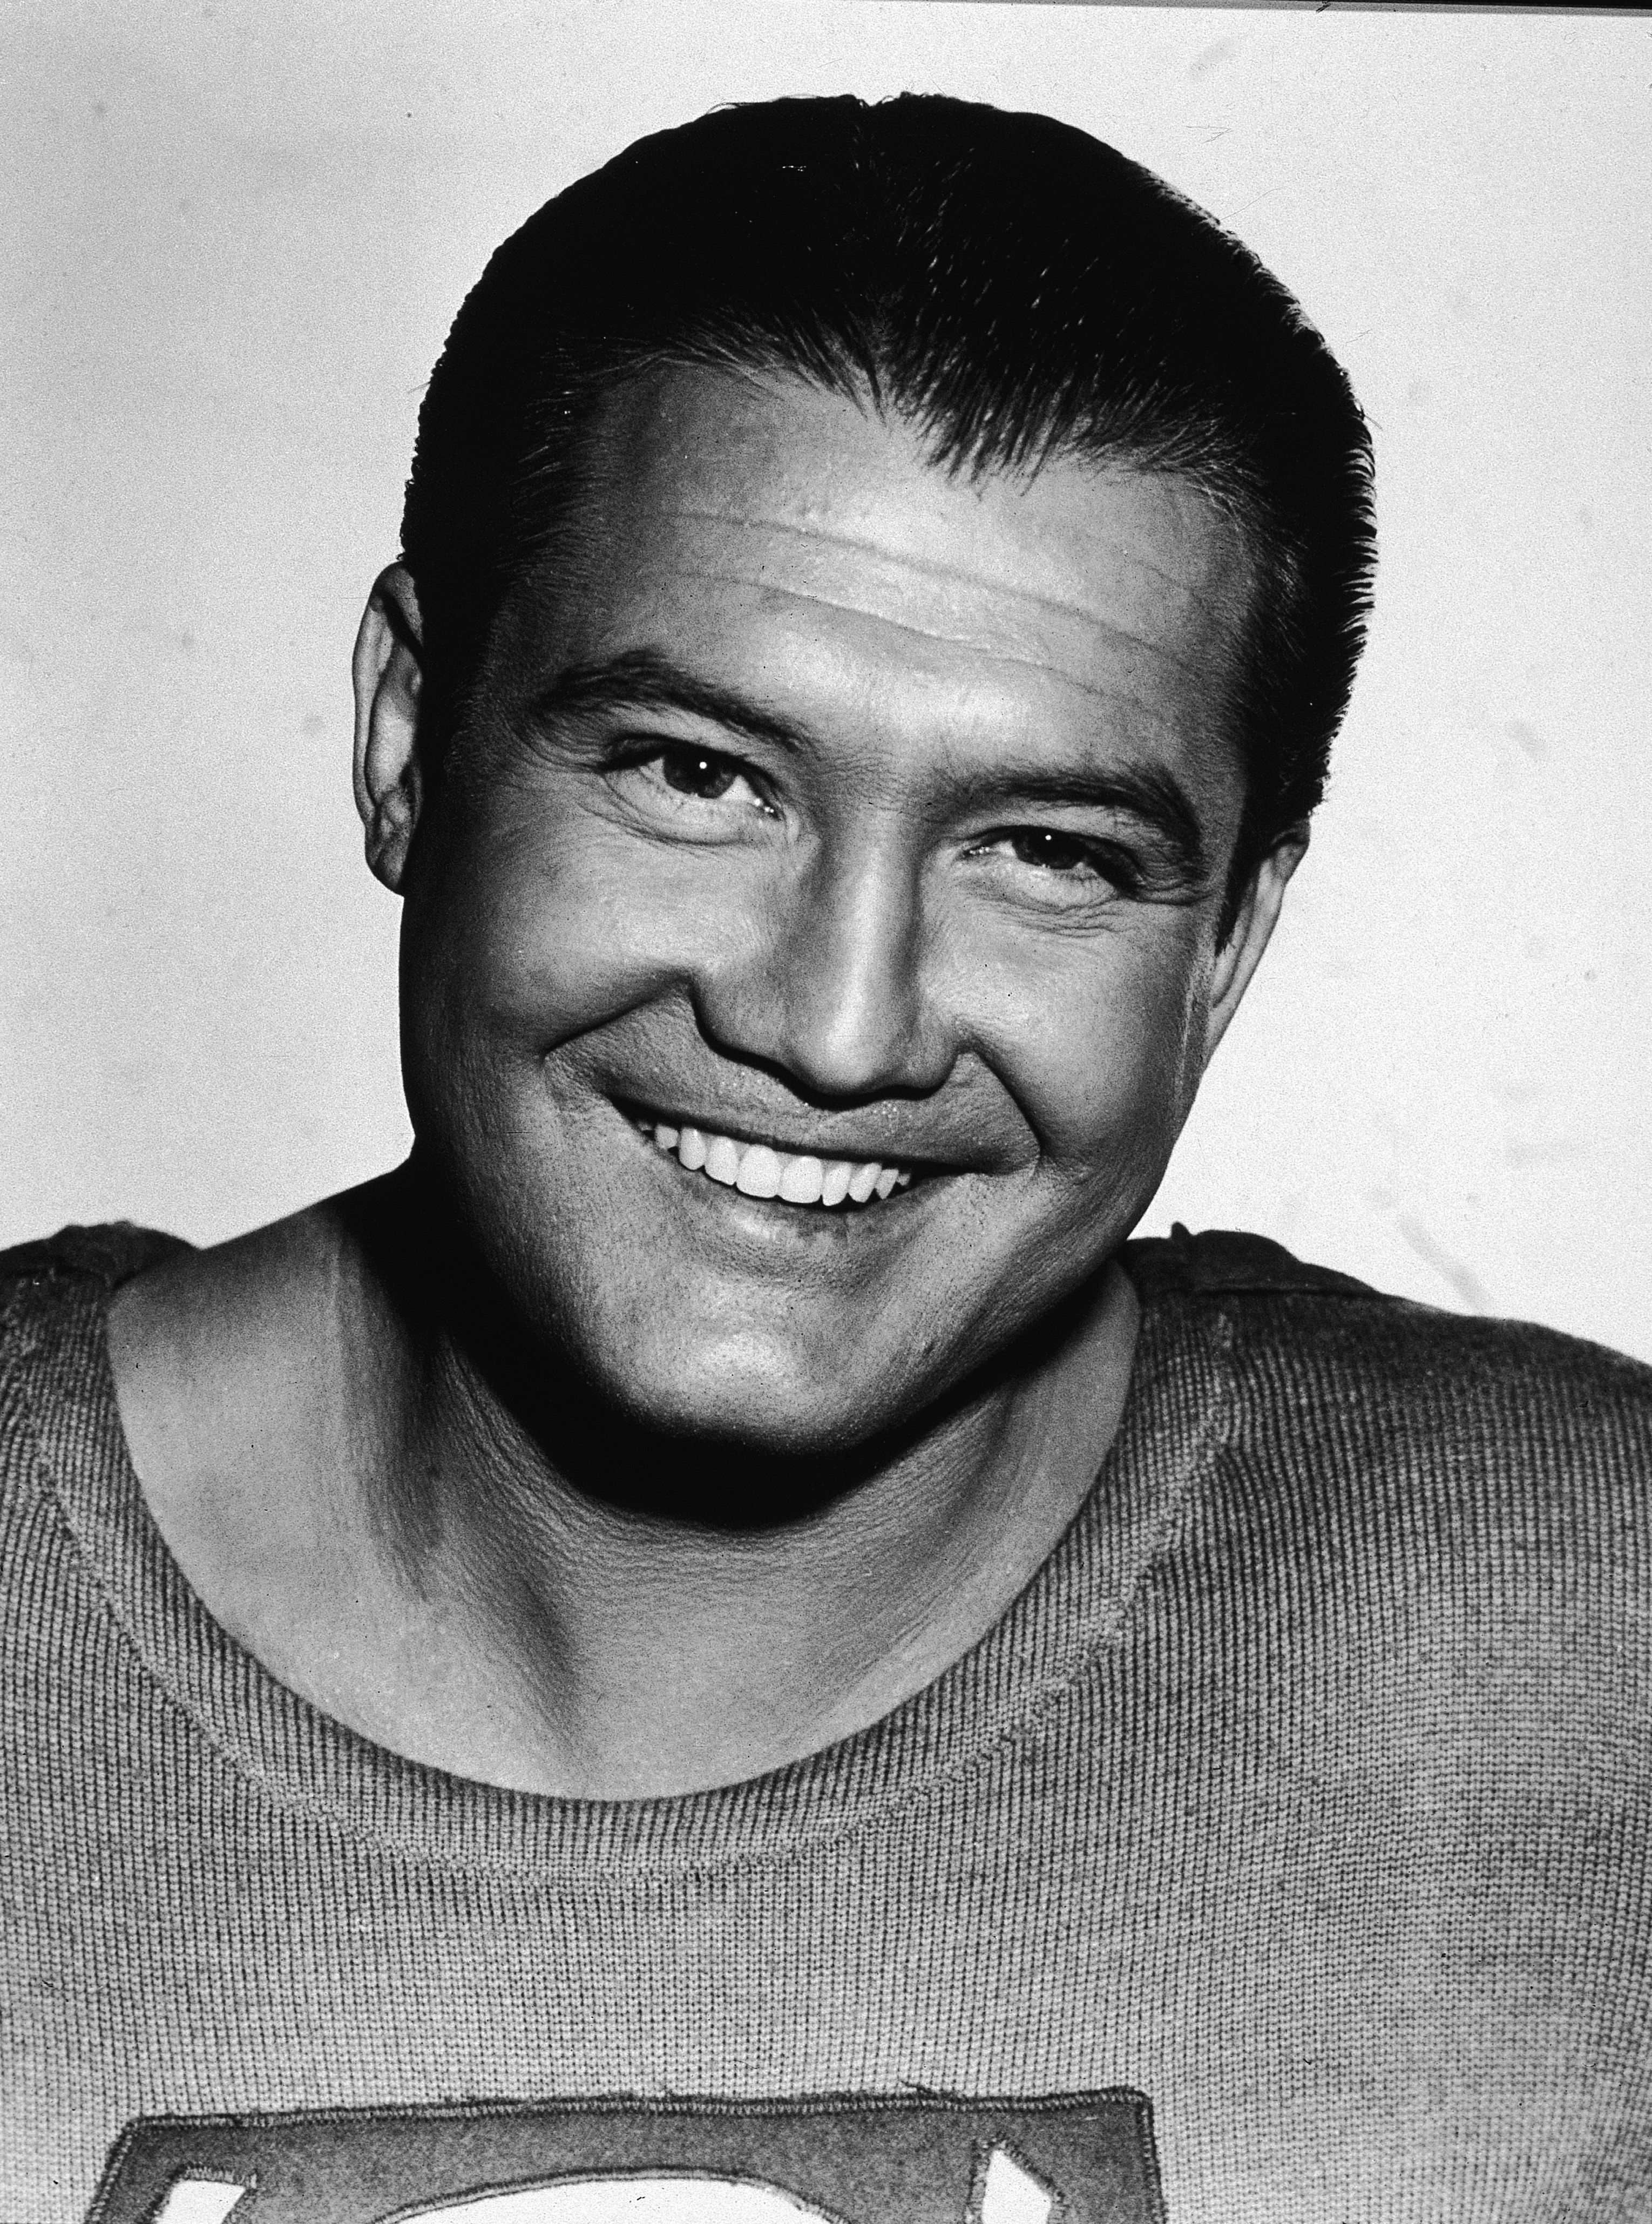 """George Reeves in a promotional portrait while dressed as the star of """"The Adventures of Superman,"""" circa 1952 